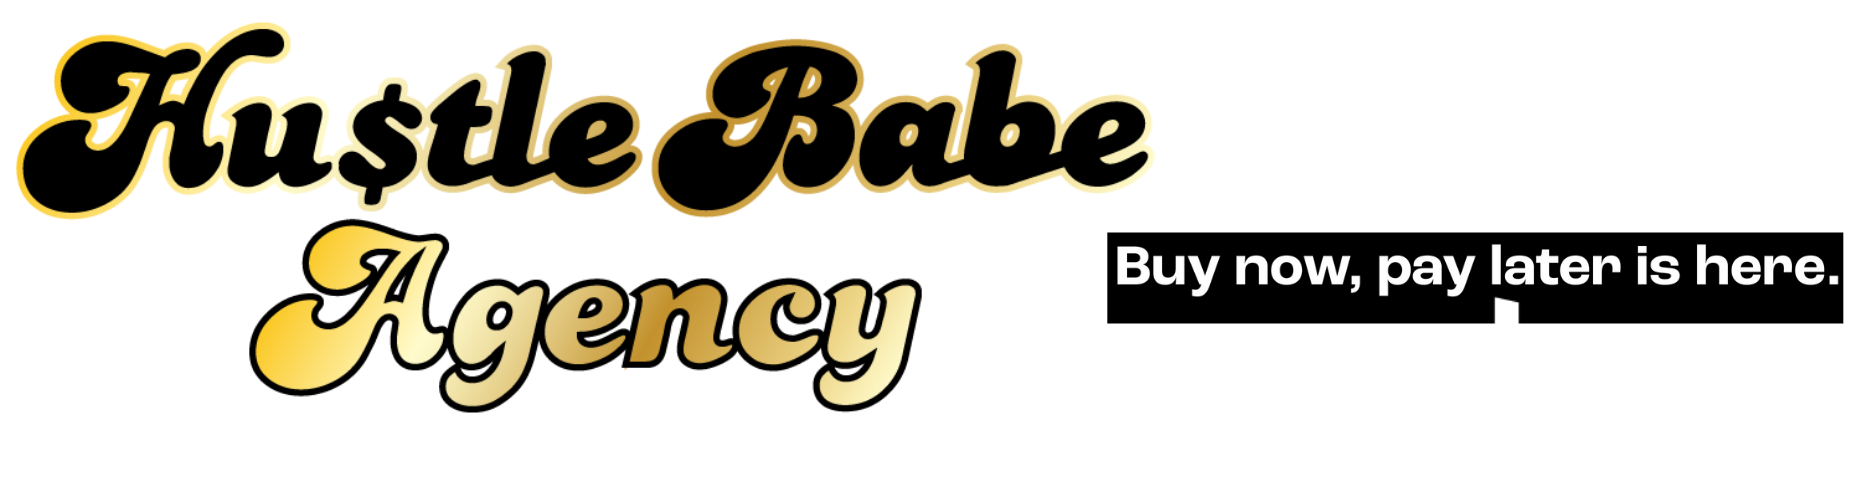 The Hustle Babe Agency